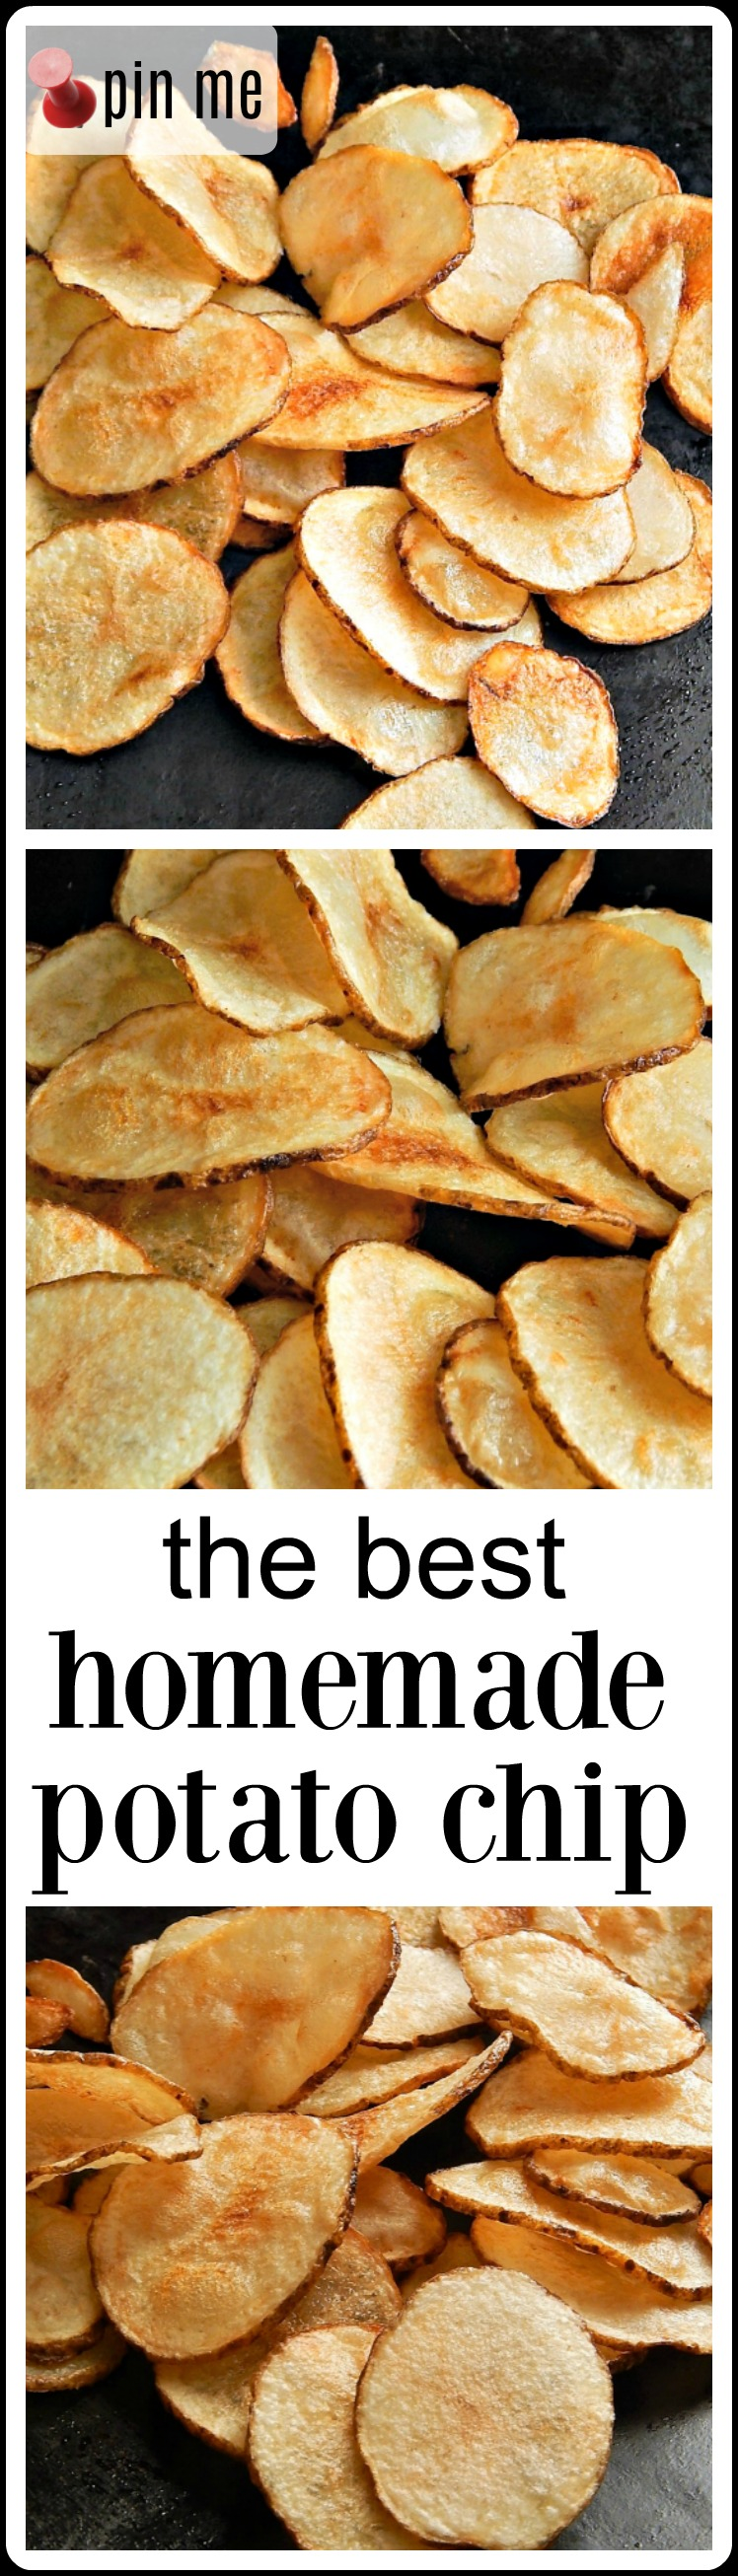 The Best Homemade Potato Chip. If you haven't ever had a home-made potato chip, you just haven't lived. Homemade potato chips are warm, crispy crunchy deliciousness. These are brined and twice-fried.